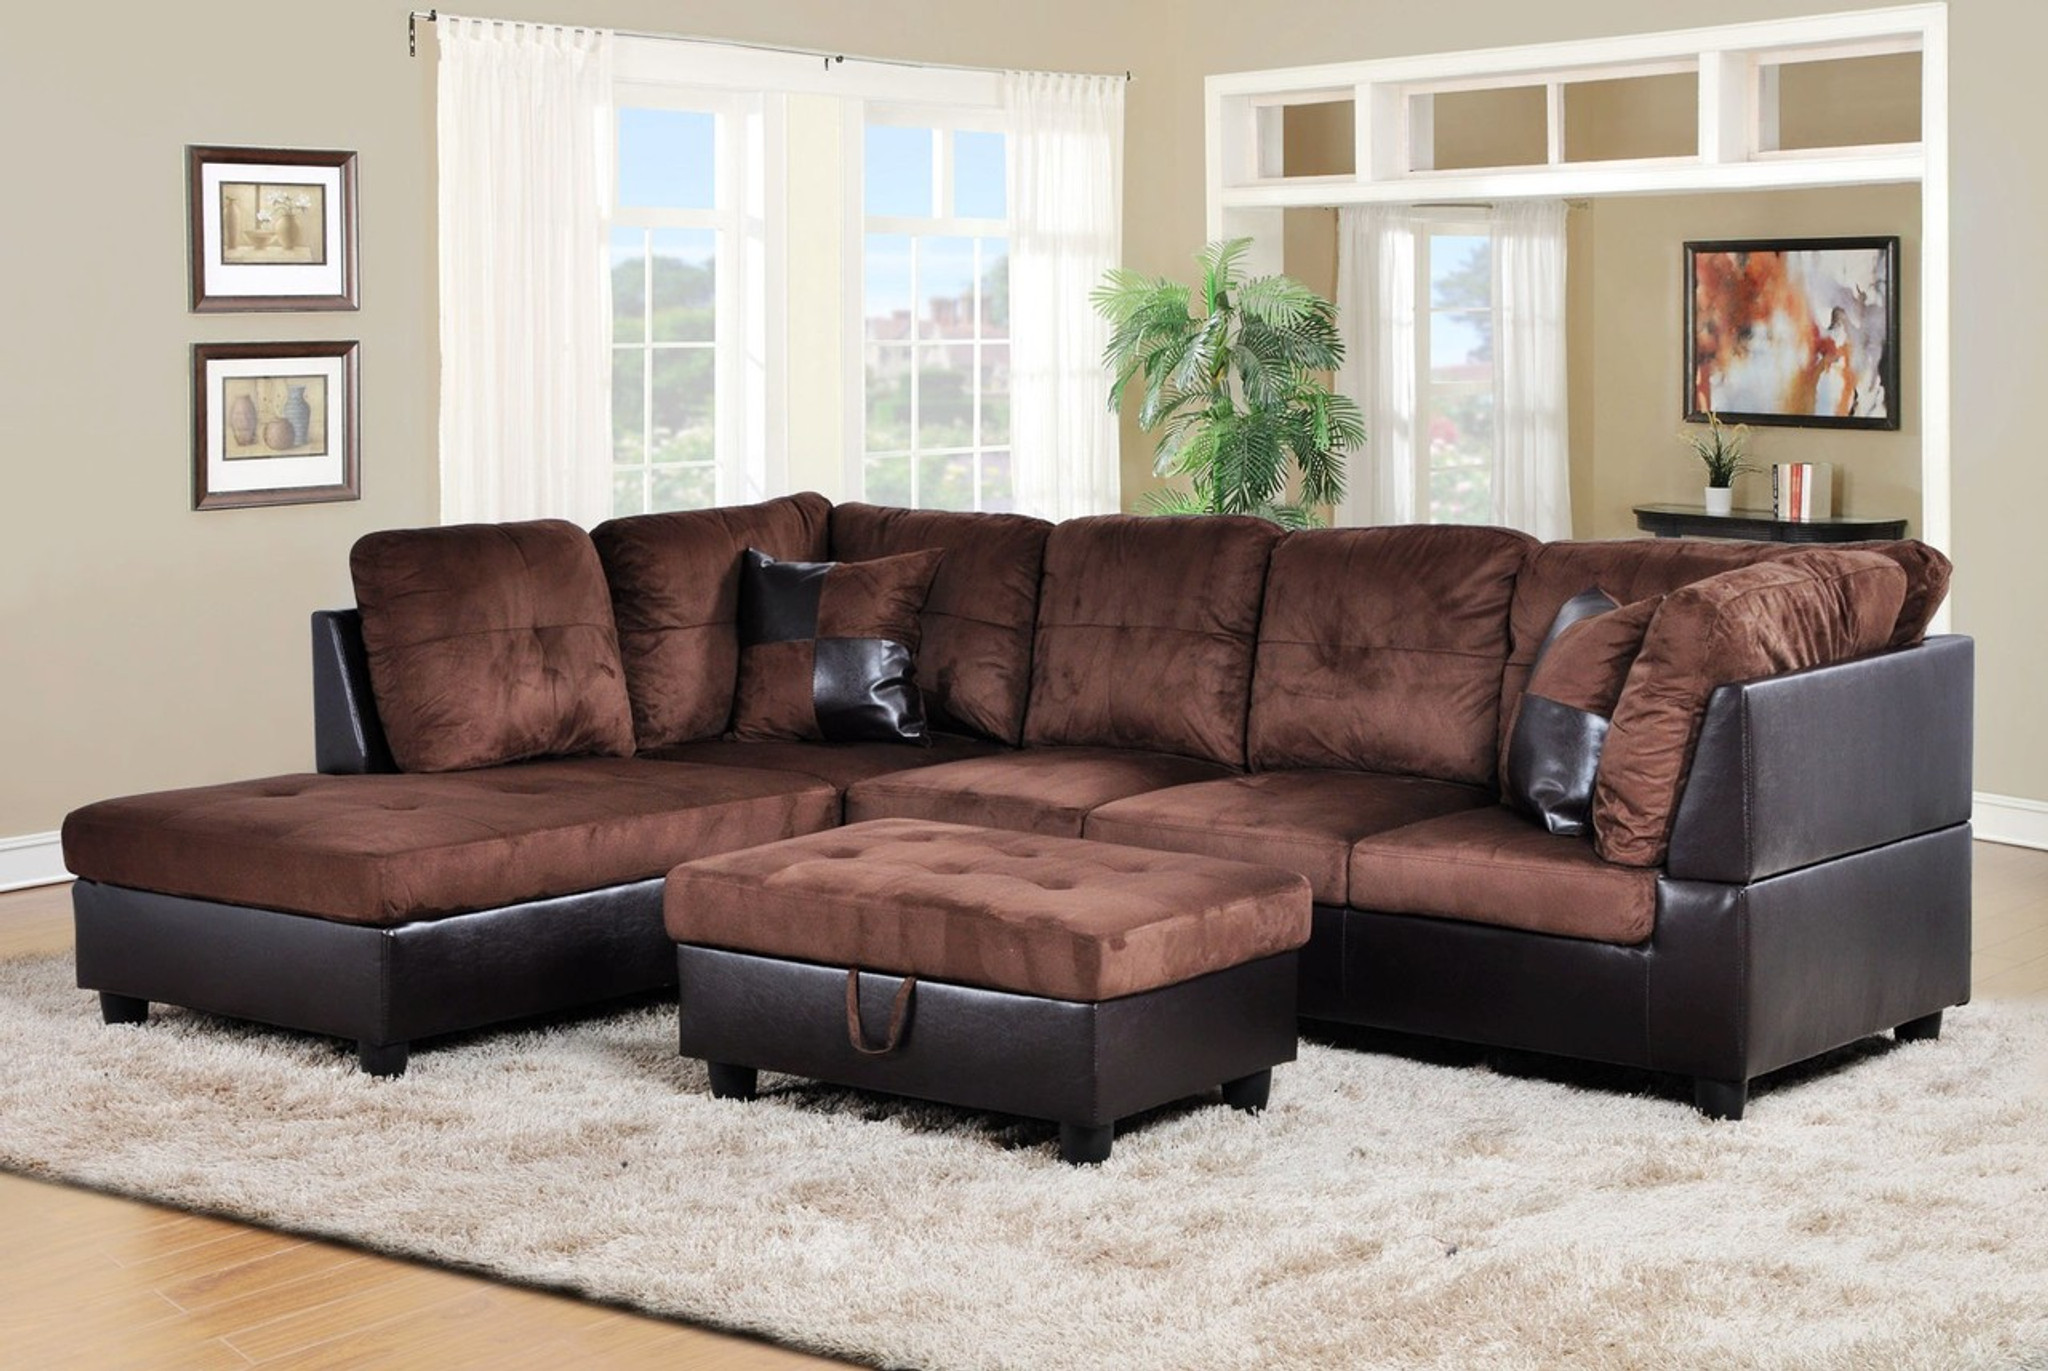 Terrific 2 Pcs Alexander Brown Sectional With Accent Pillows Right Facing Sofa Squirreltailoven Fun Painted Chair Ideas Images Squirreltailovenorg